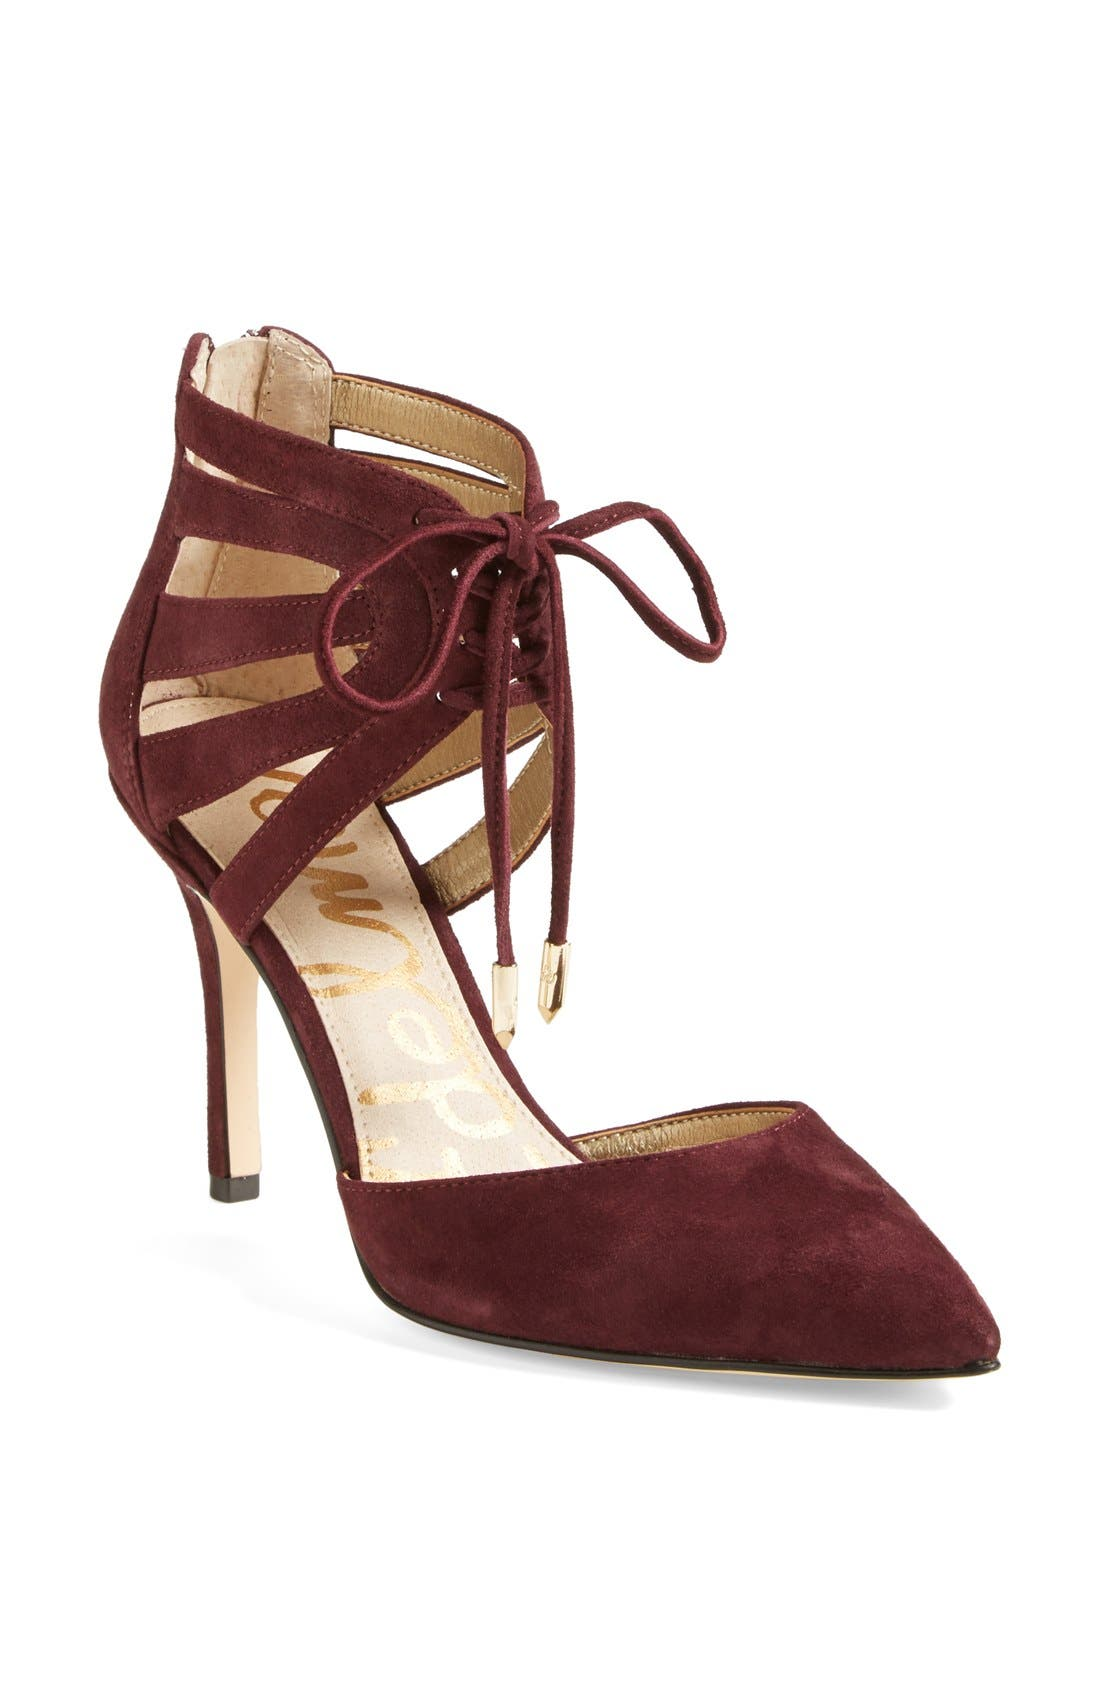 Main Image - Sam Edelman 'Zachary' Cutout Ankle Cuff Suede Pump (Women)